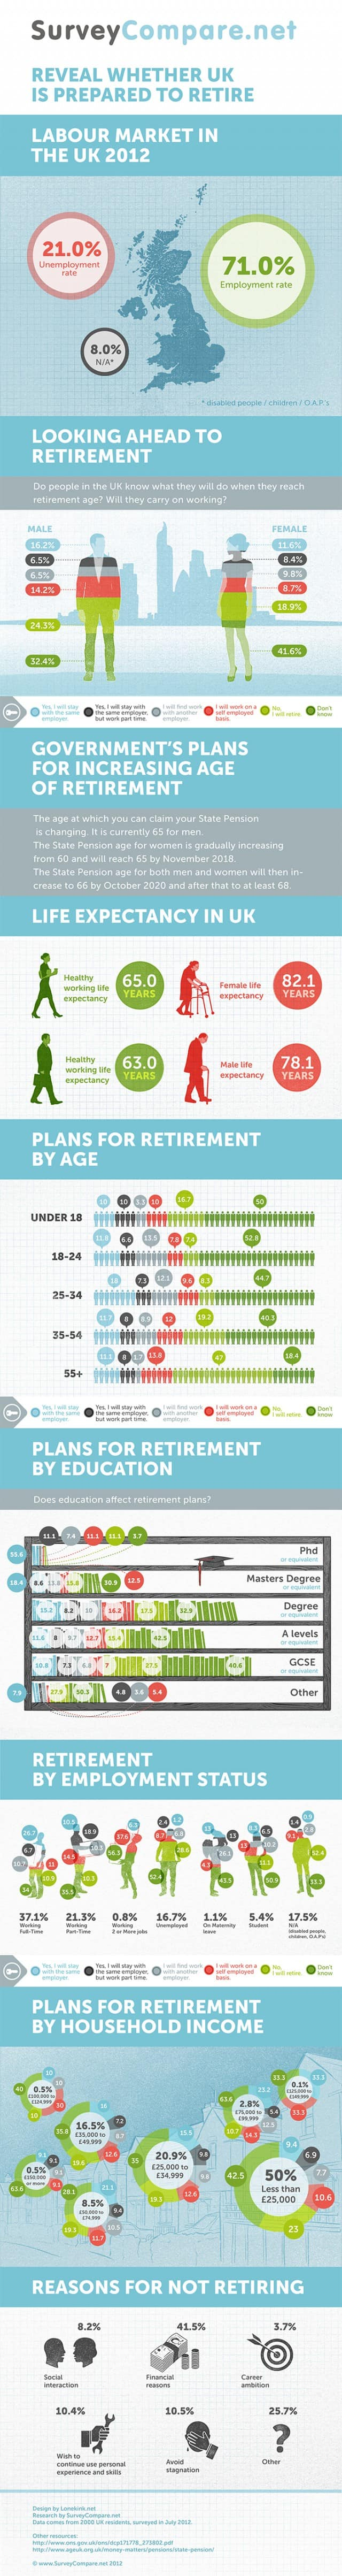 Changes in U.K. Retirement